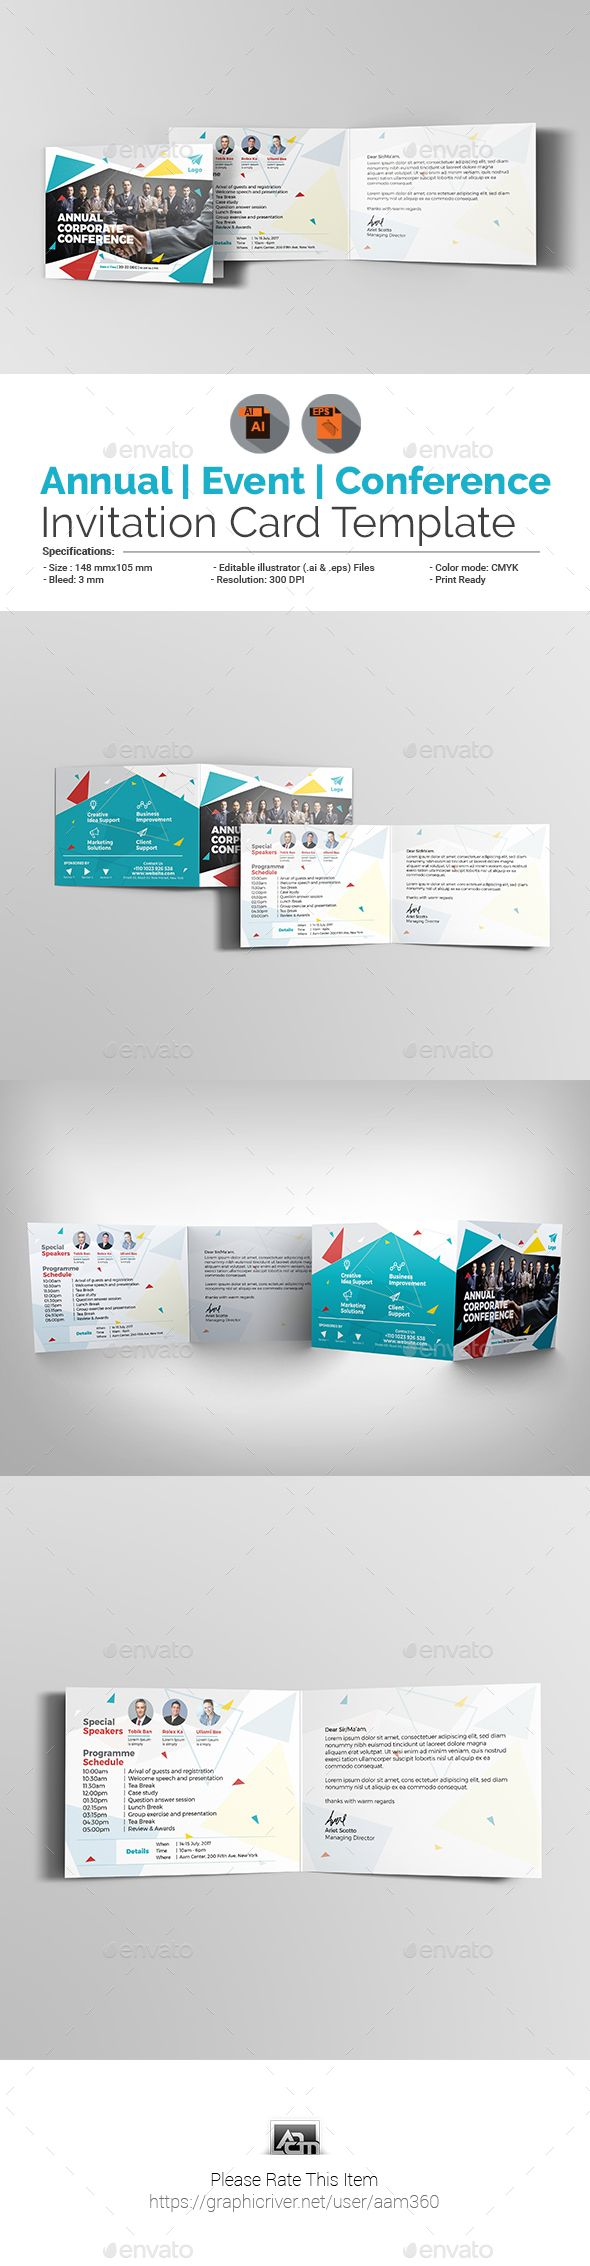 Conference invitation card vector inviview annual corporate event conference invitation card template print stopboris Images